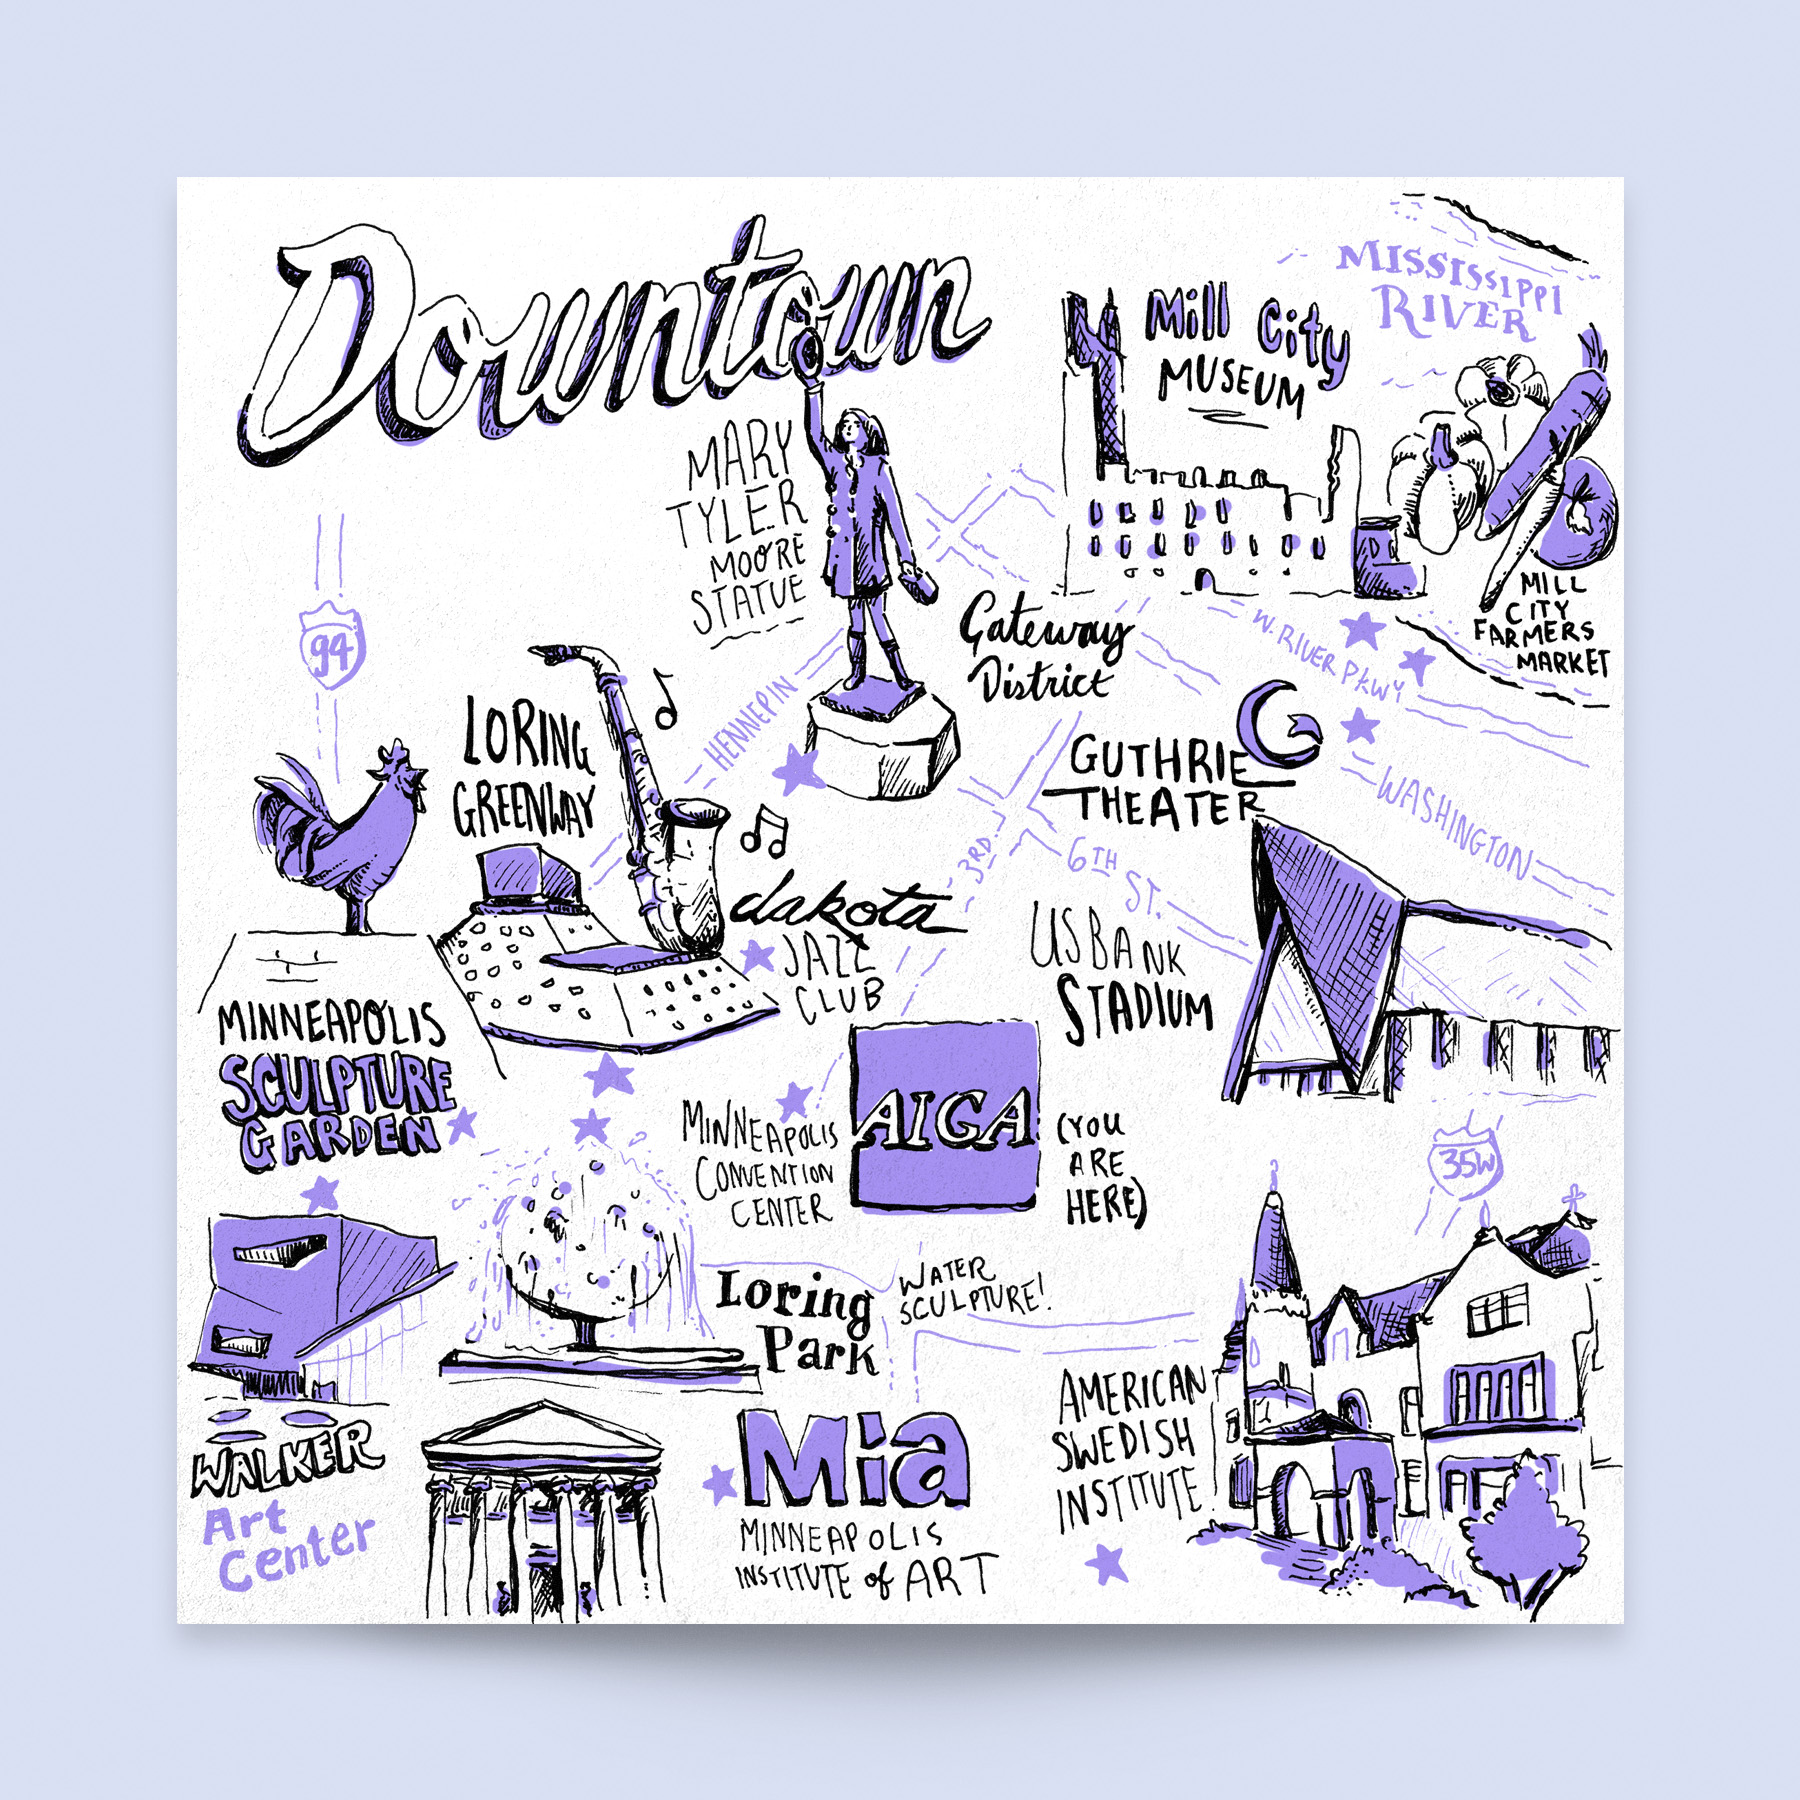 The Downtown neighborhood city map, hand illustrated for Neenah Paper at the AIGA Design Conference 2017. Shows: Mill City Museum, Farmers Market, Mary Tyler Moore Statue, Guthrie Theater, Sculpture Garden, Convention Center, Walker Art Center, Loring Park, American Swedish Institute, Institute of Art